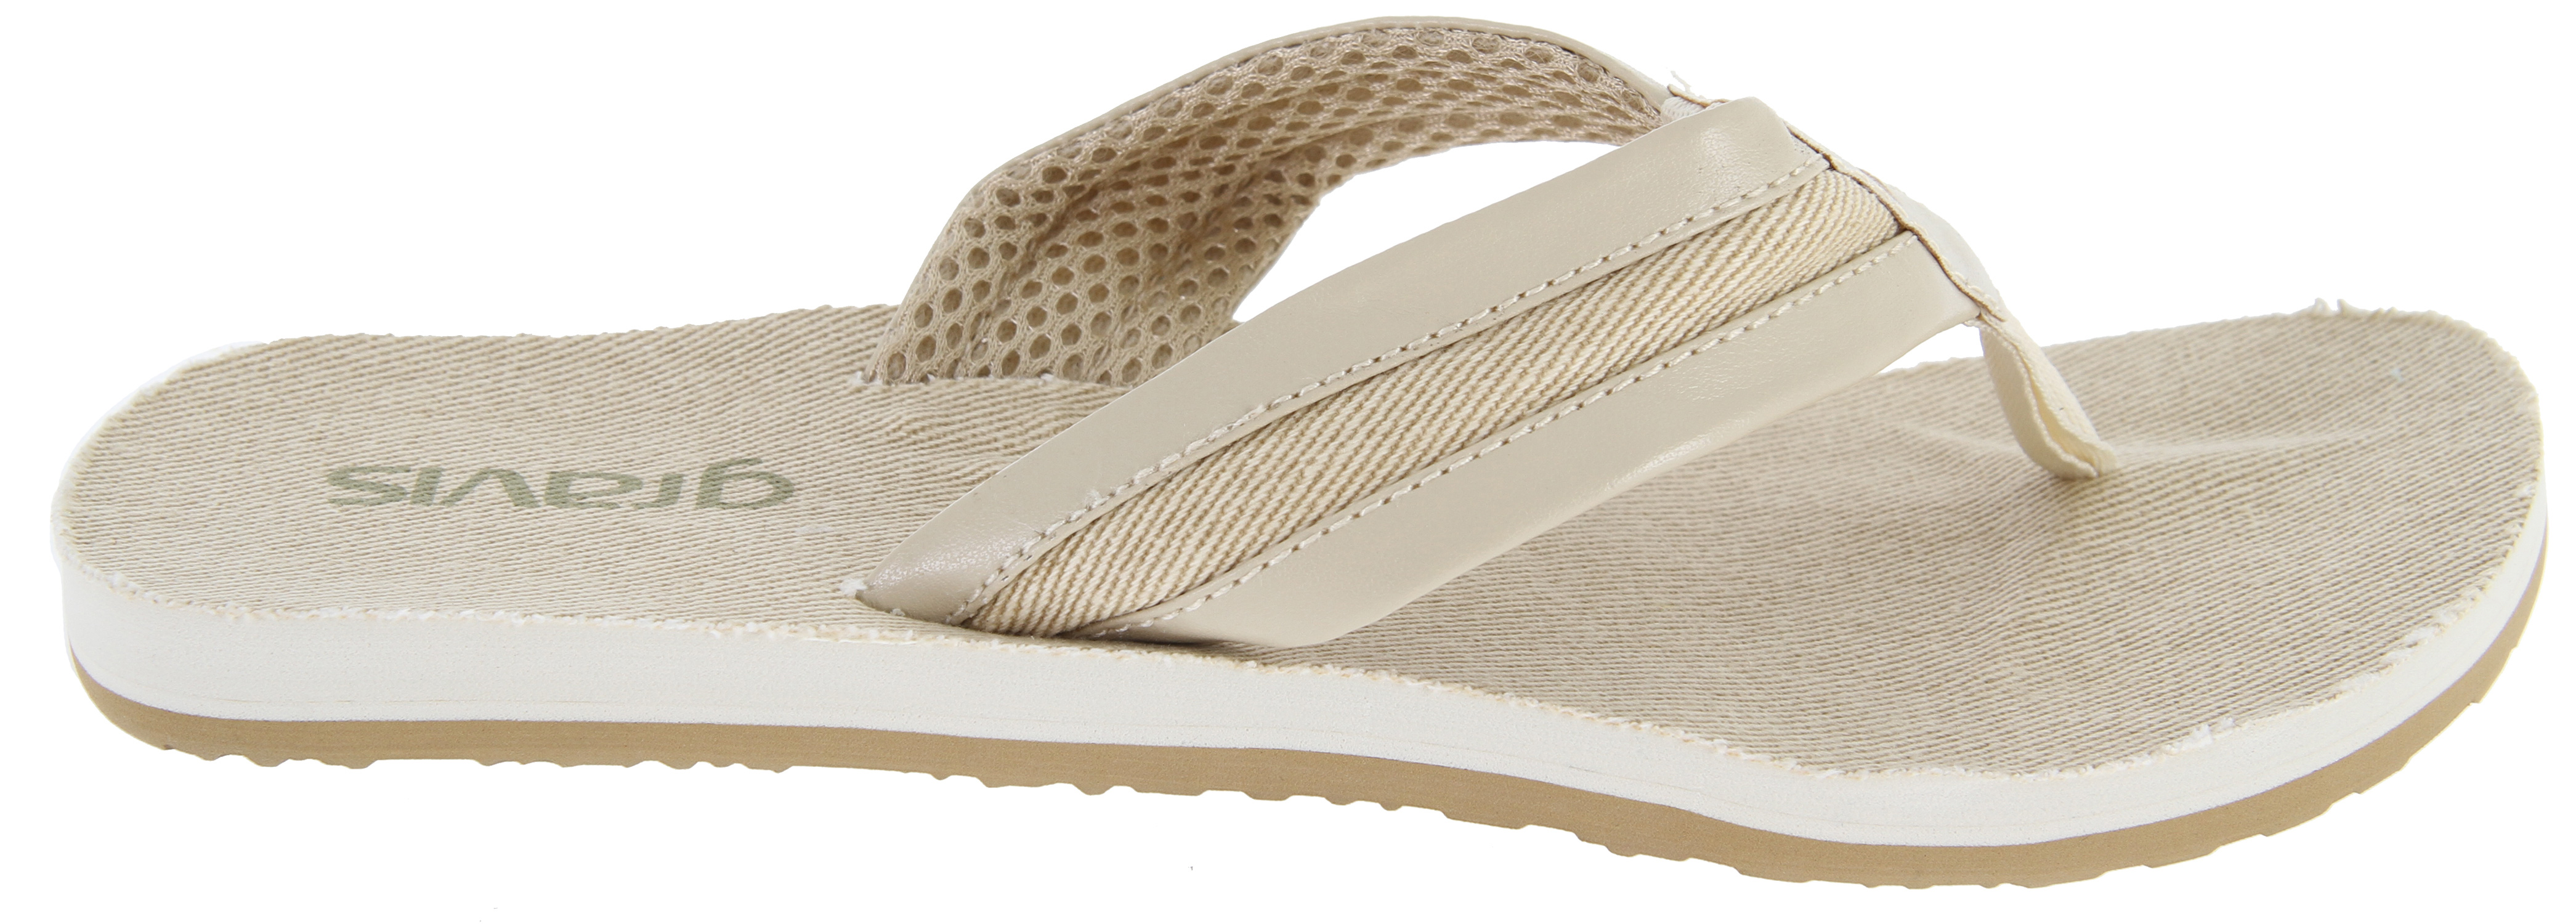 Surf Key Features of the Gravis San Lucas Sandals: Cotton damask topdeck materials Arch support Synthetic leather strap with canvas underlays Mesh lined strap Nylon webbing toe post New molded top deck with massaging nubs Soft touch eva foam topdeck Durable traction outsole - $7.95